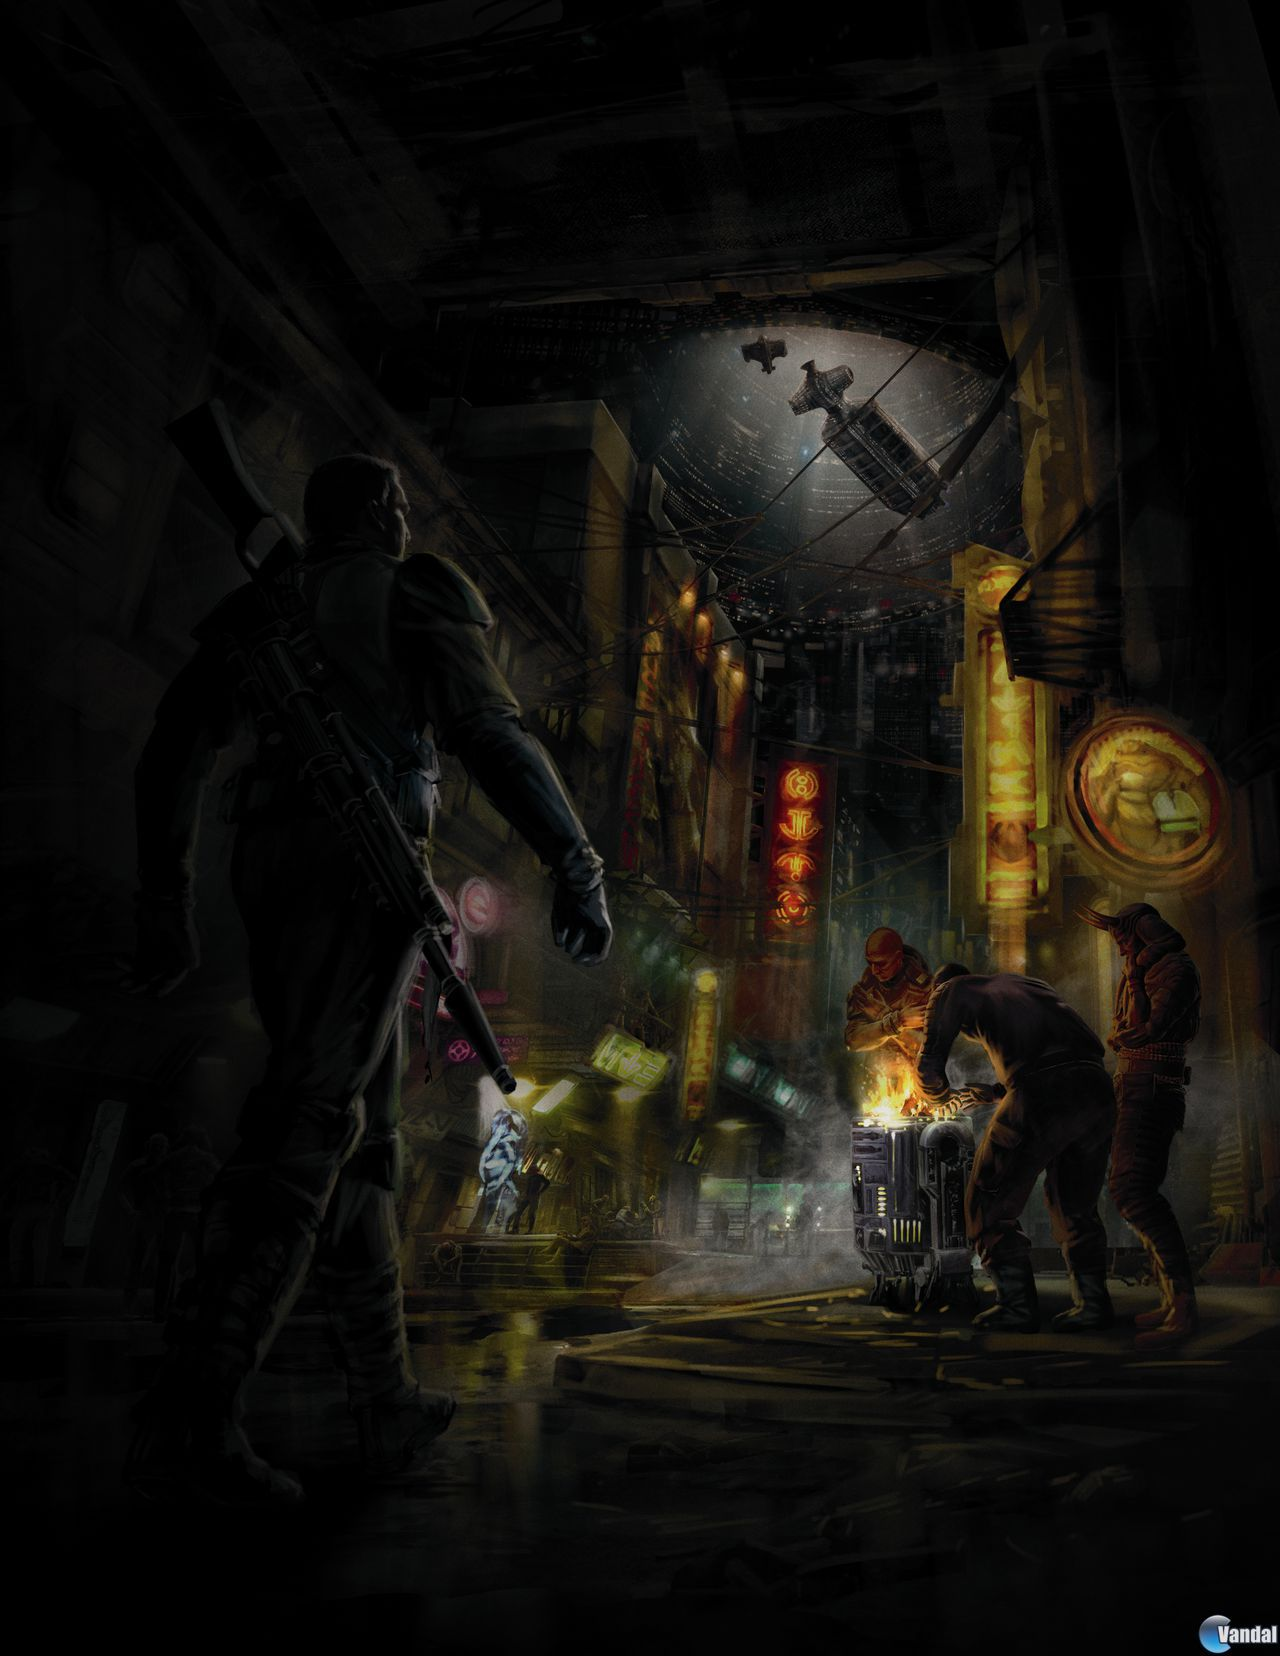 Star Wars 1313 se luce en nuevas imgenes y vdeo